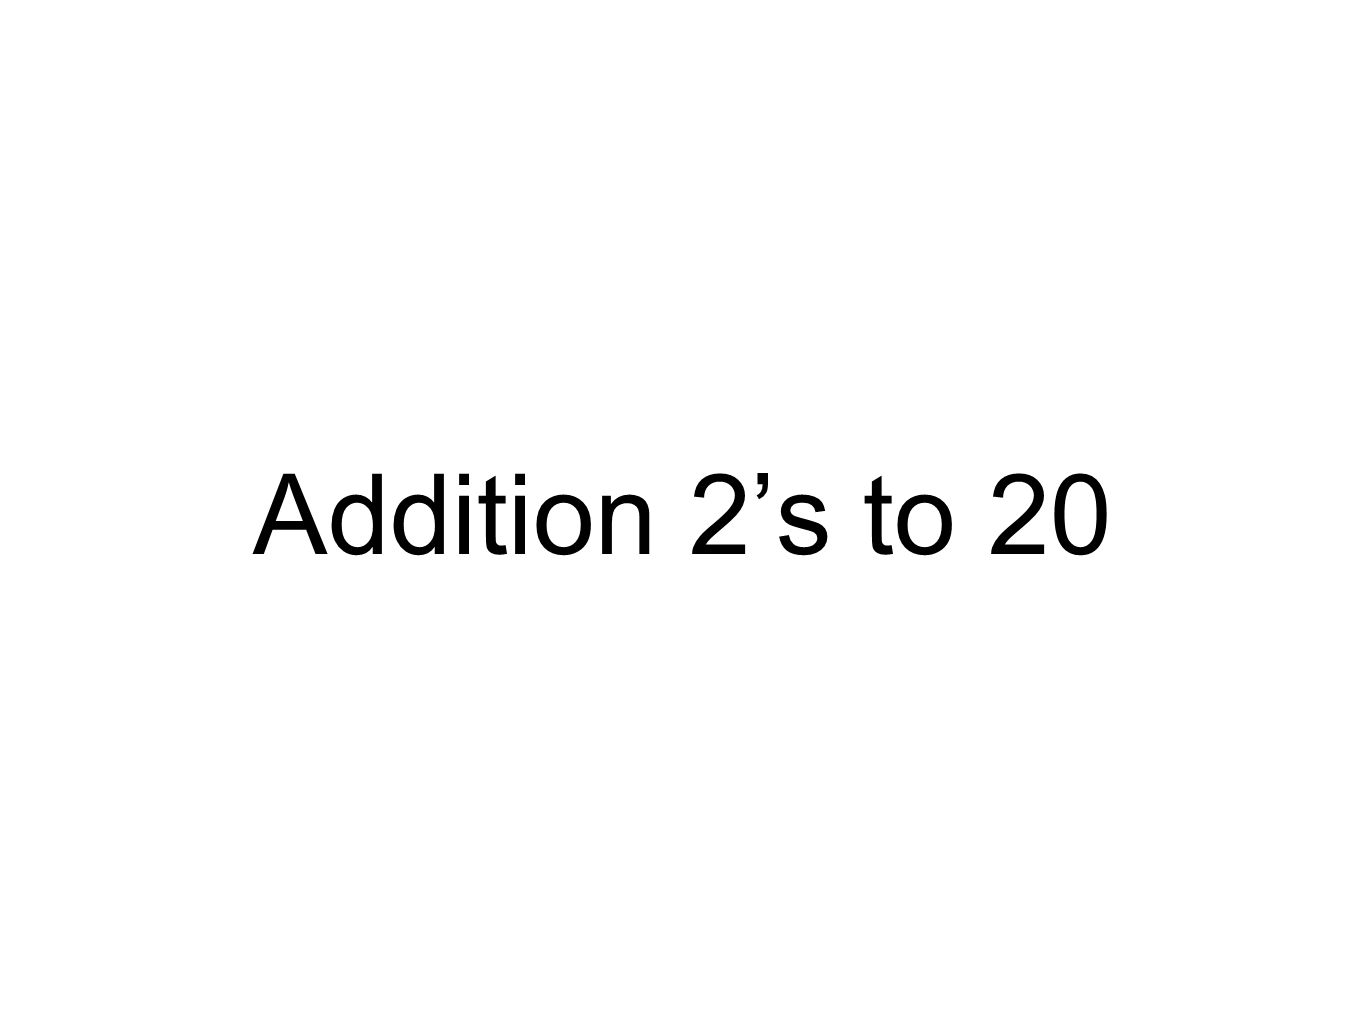 Addition 2's to 20